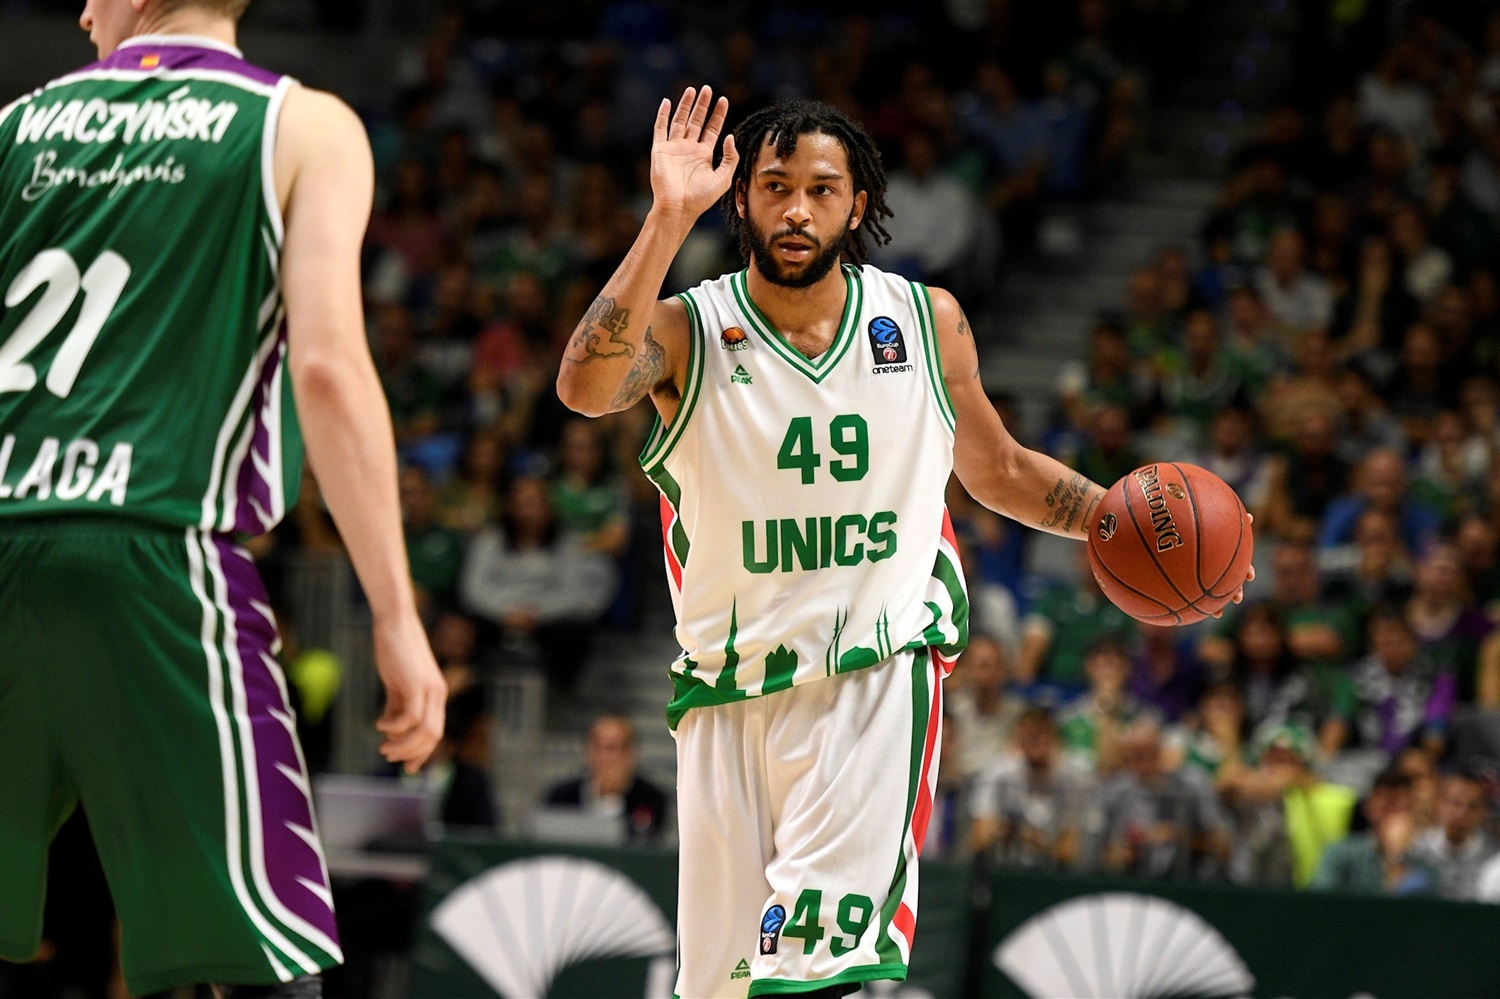 Pierria Henry - UNICS Kazan (photo Unicaja - Mariano Pozo) - EC18